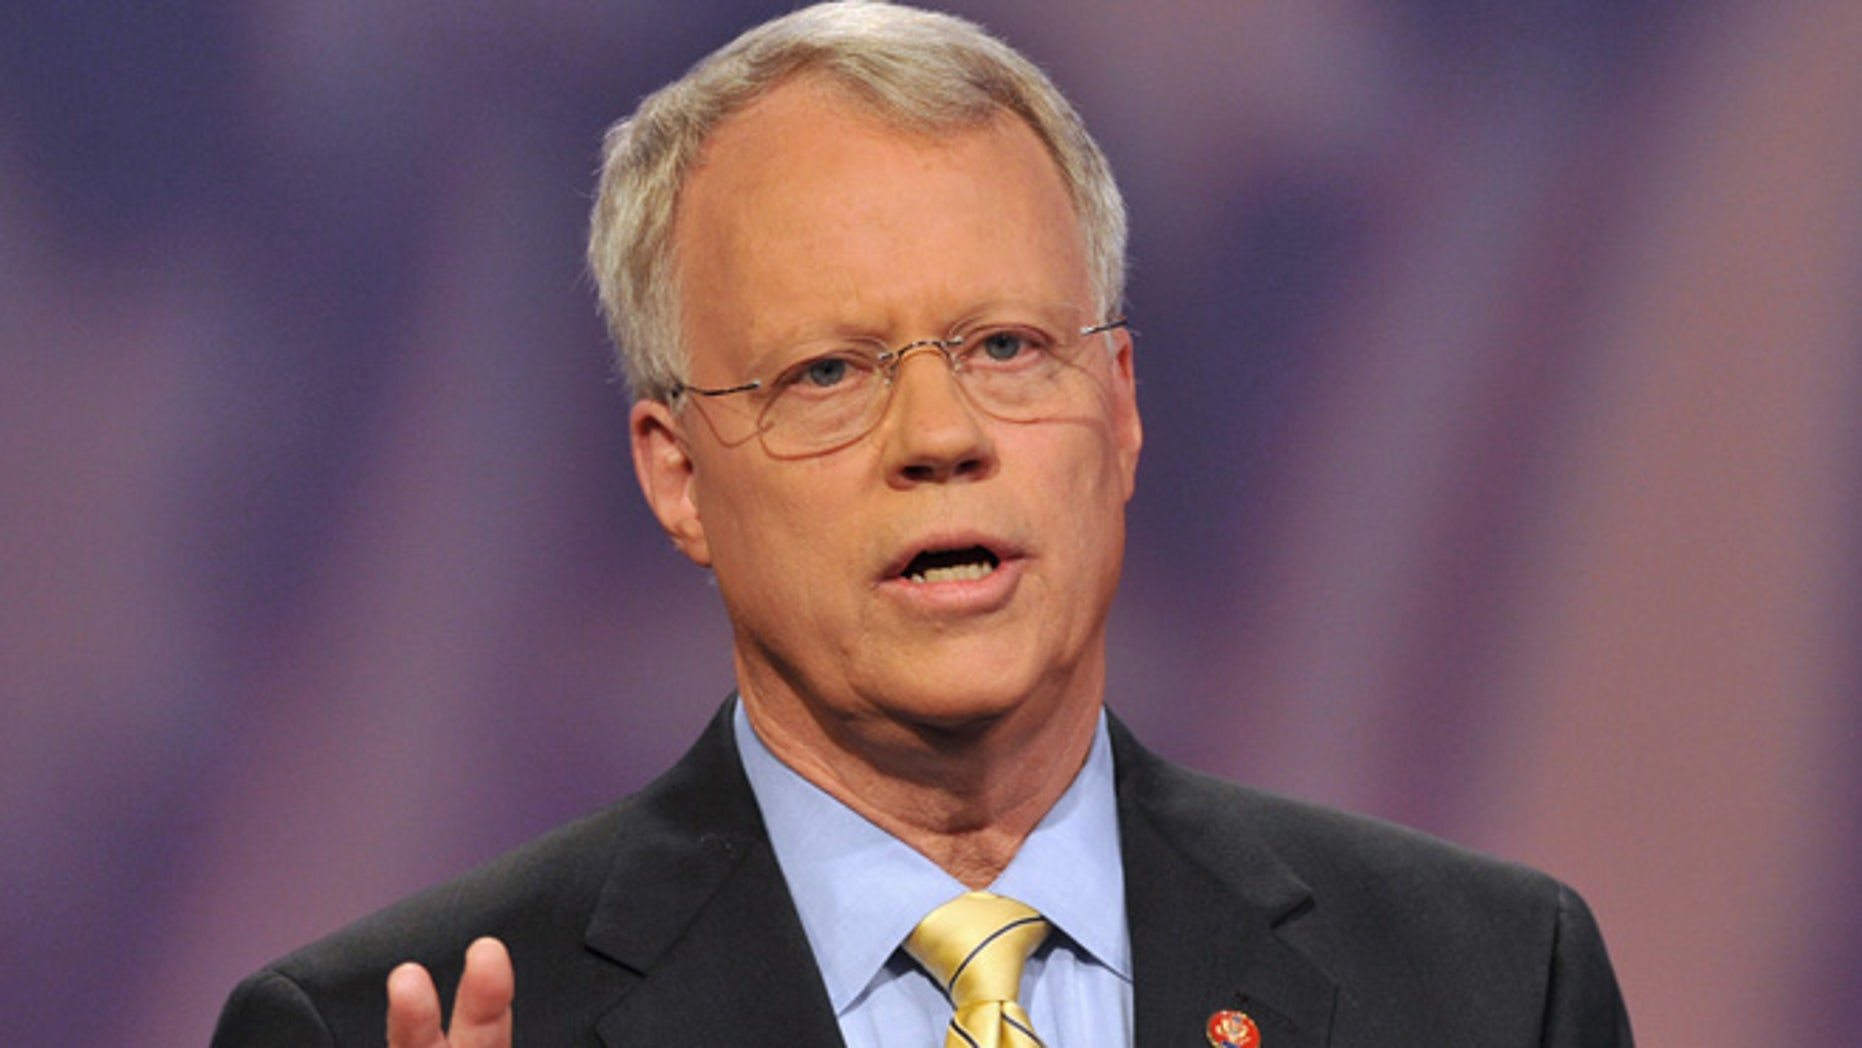 July 2, 2008: In this file photo, 10th Congressional District Republican candidate Rep. Paul Broun speaks on the set of Georgia Public television in Atlanta.